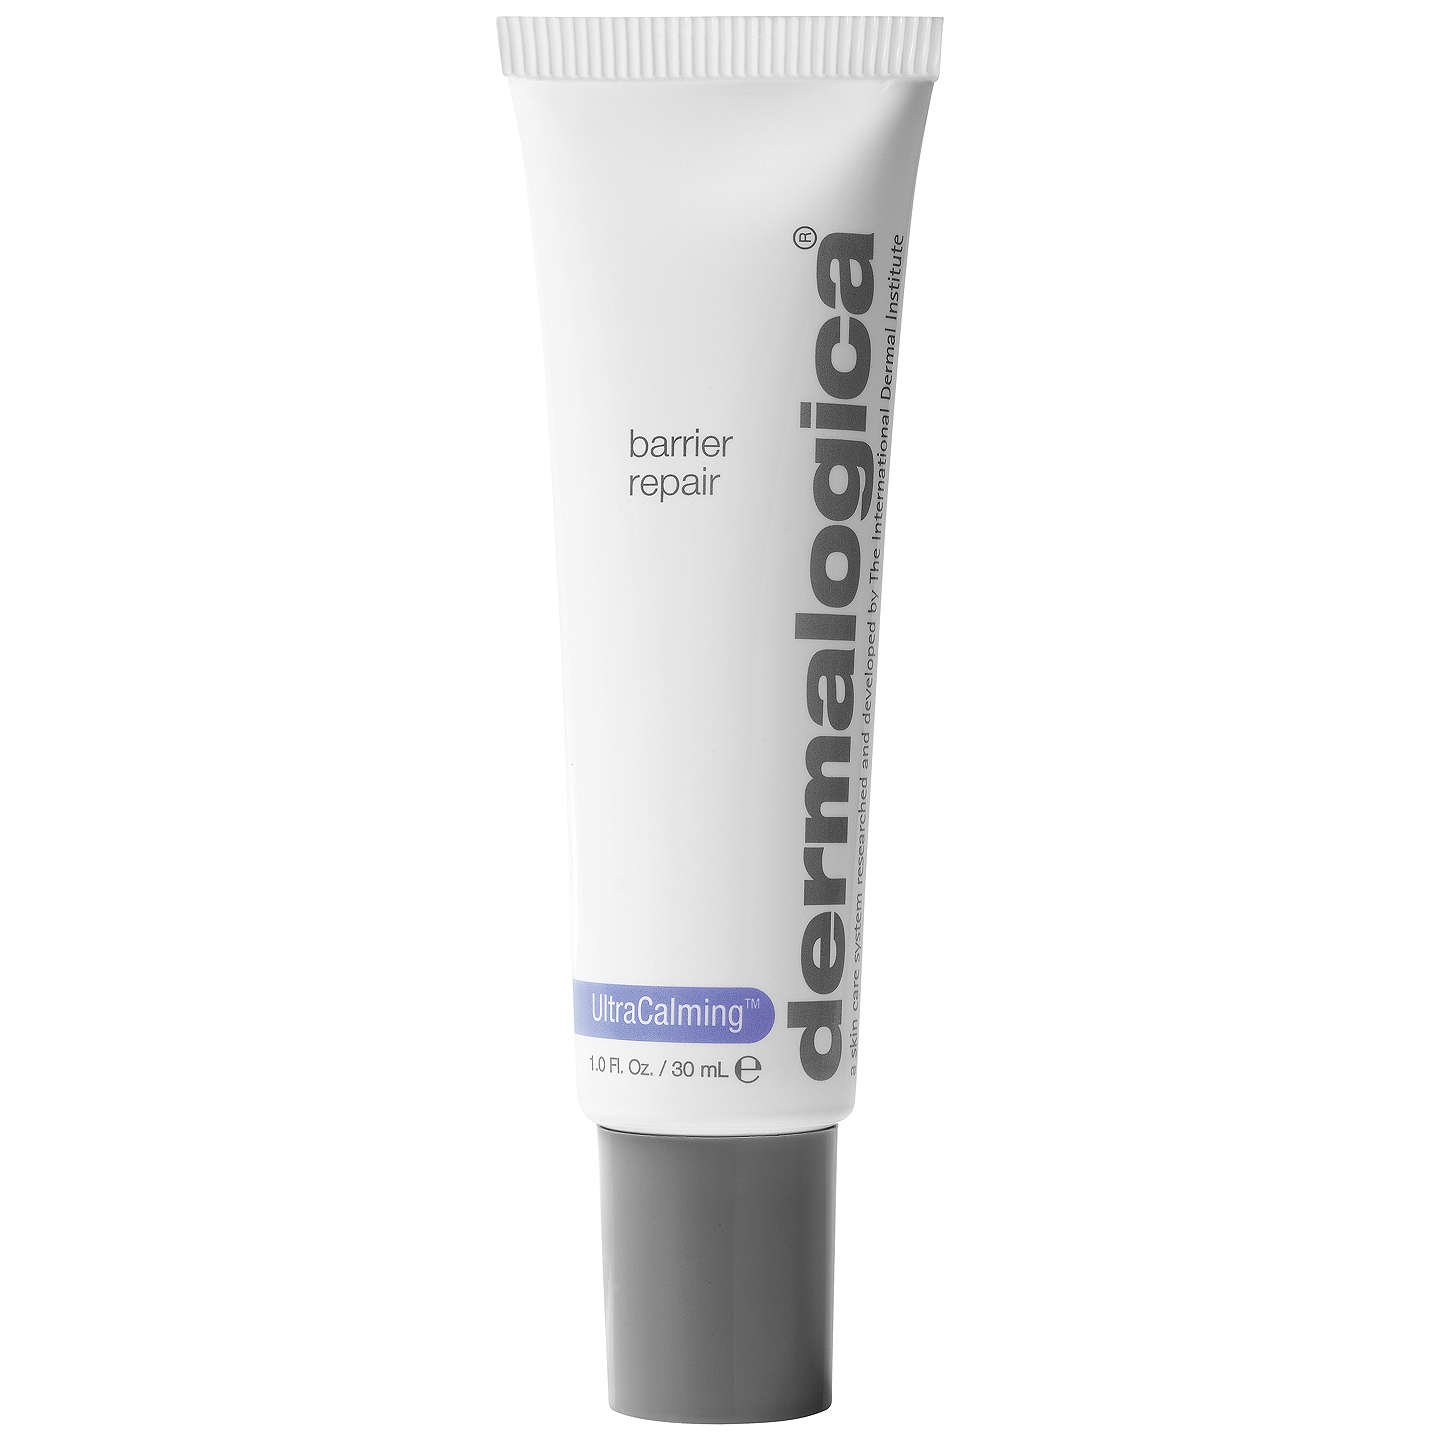 BuyDermalogica UltraCalming™ Barrier Repair, 30ml Online at johnlewis.com